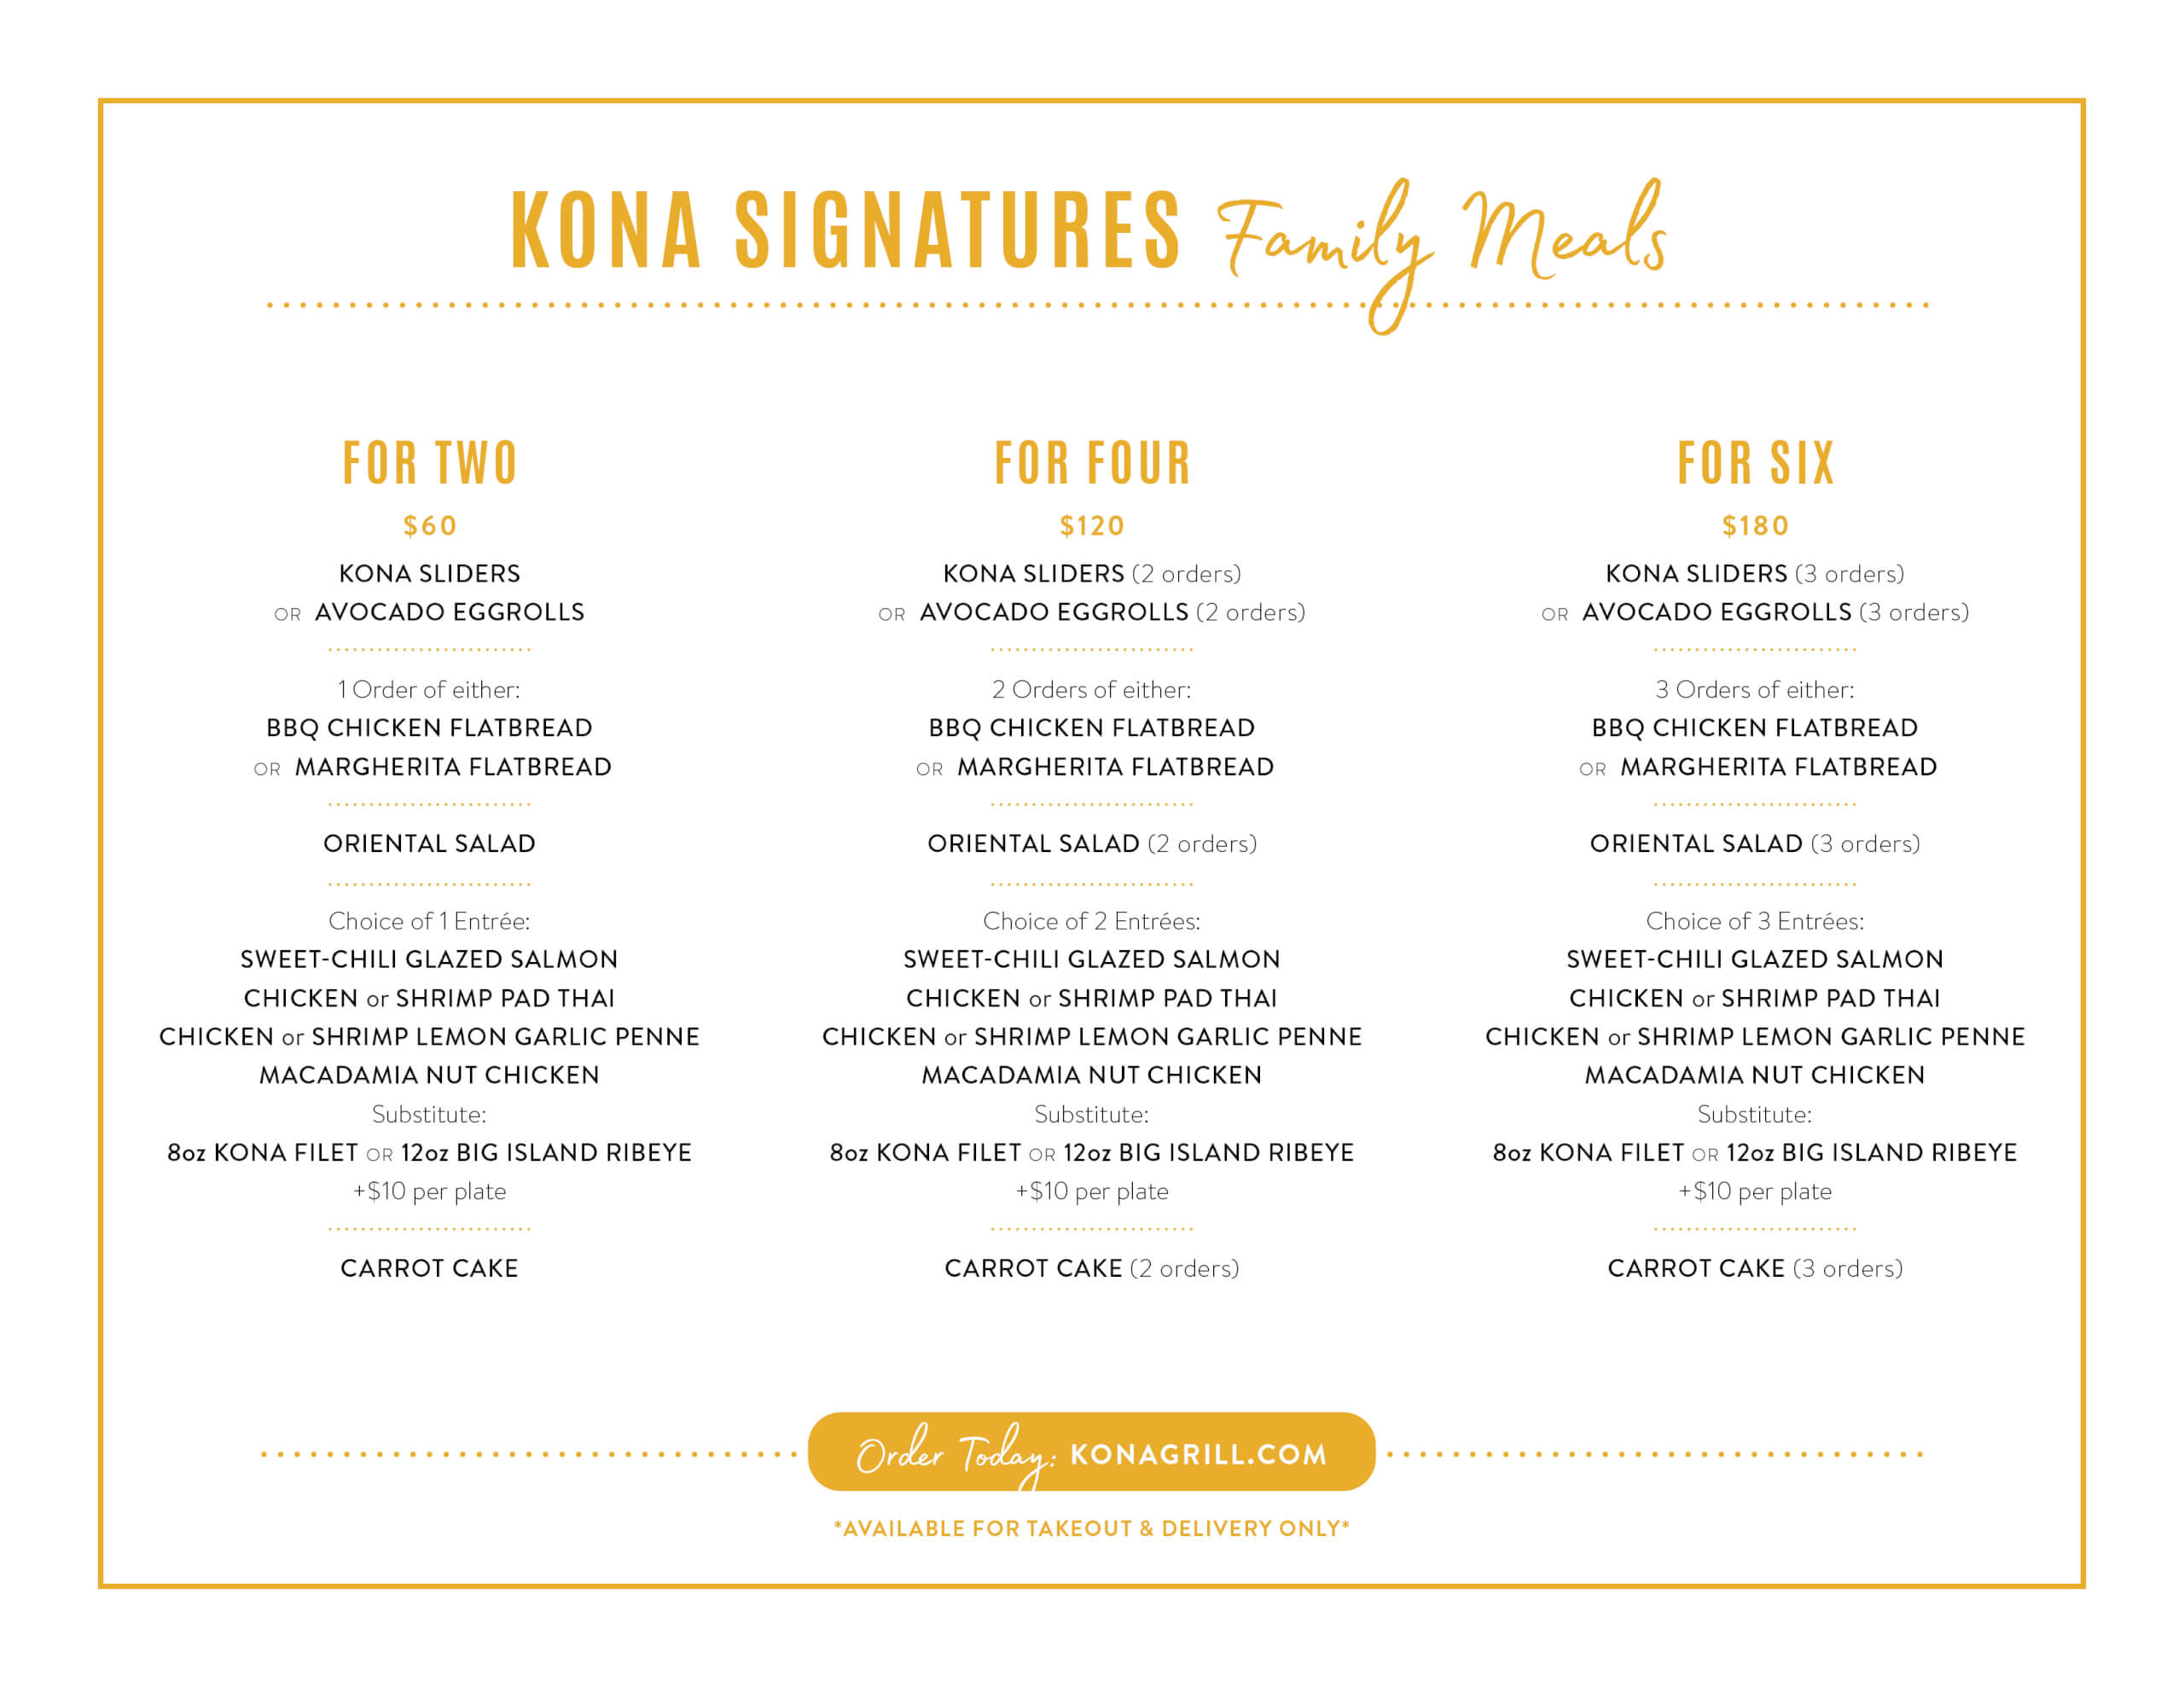 KonaSignatures_FamilyMeals_May_2020.jpg